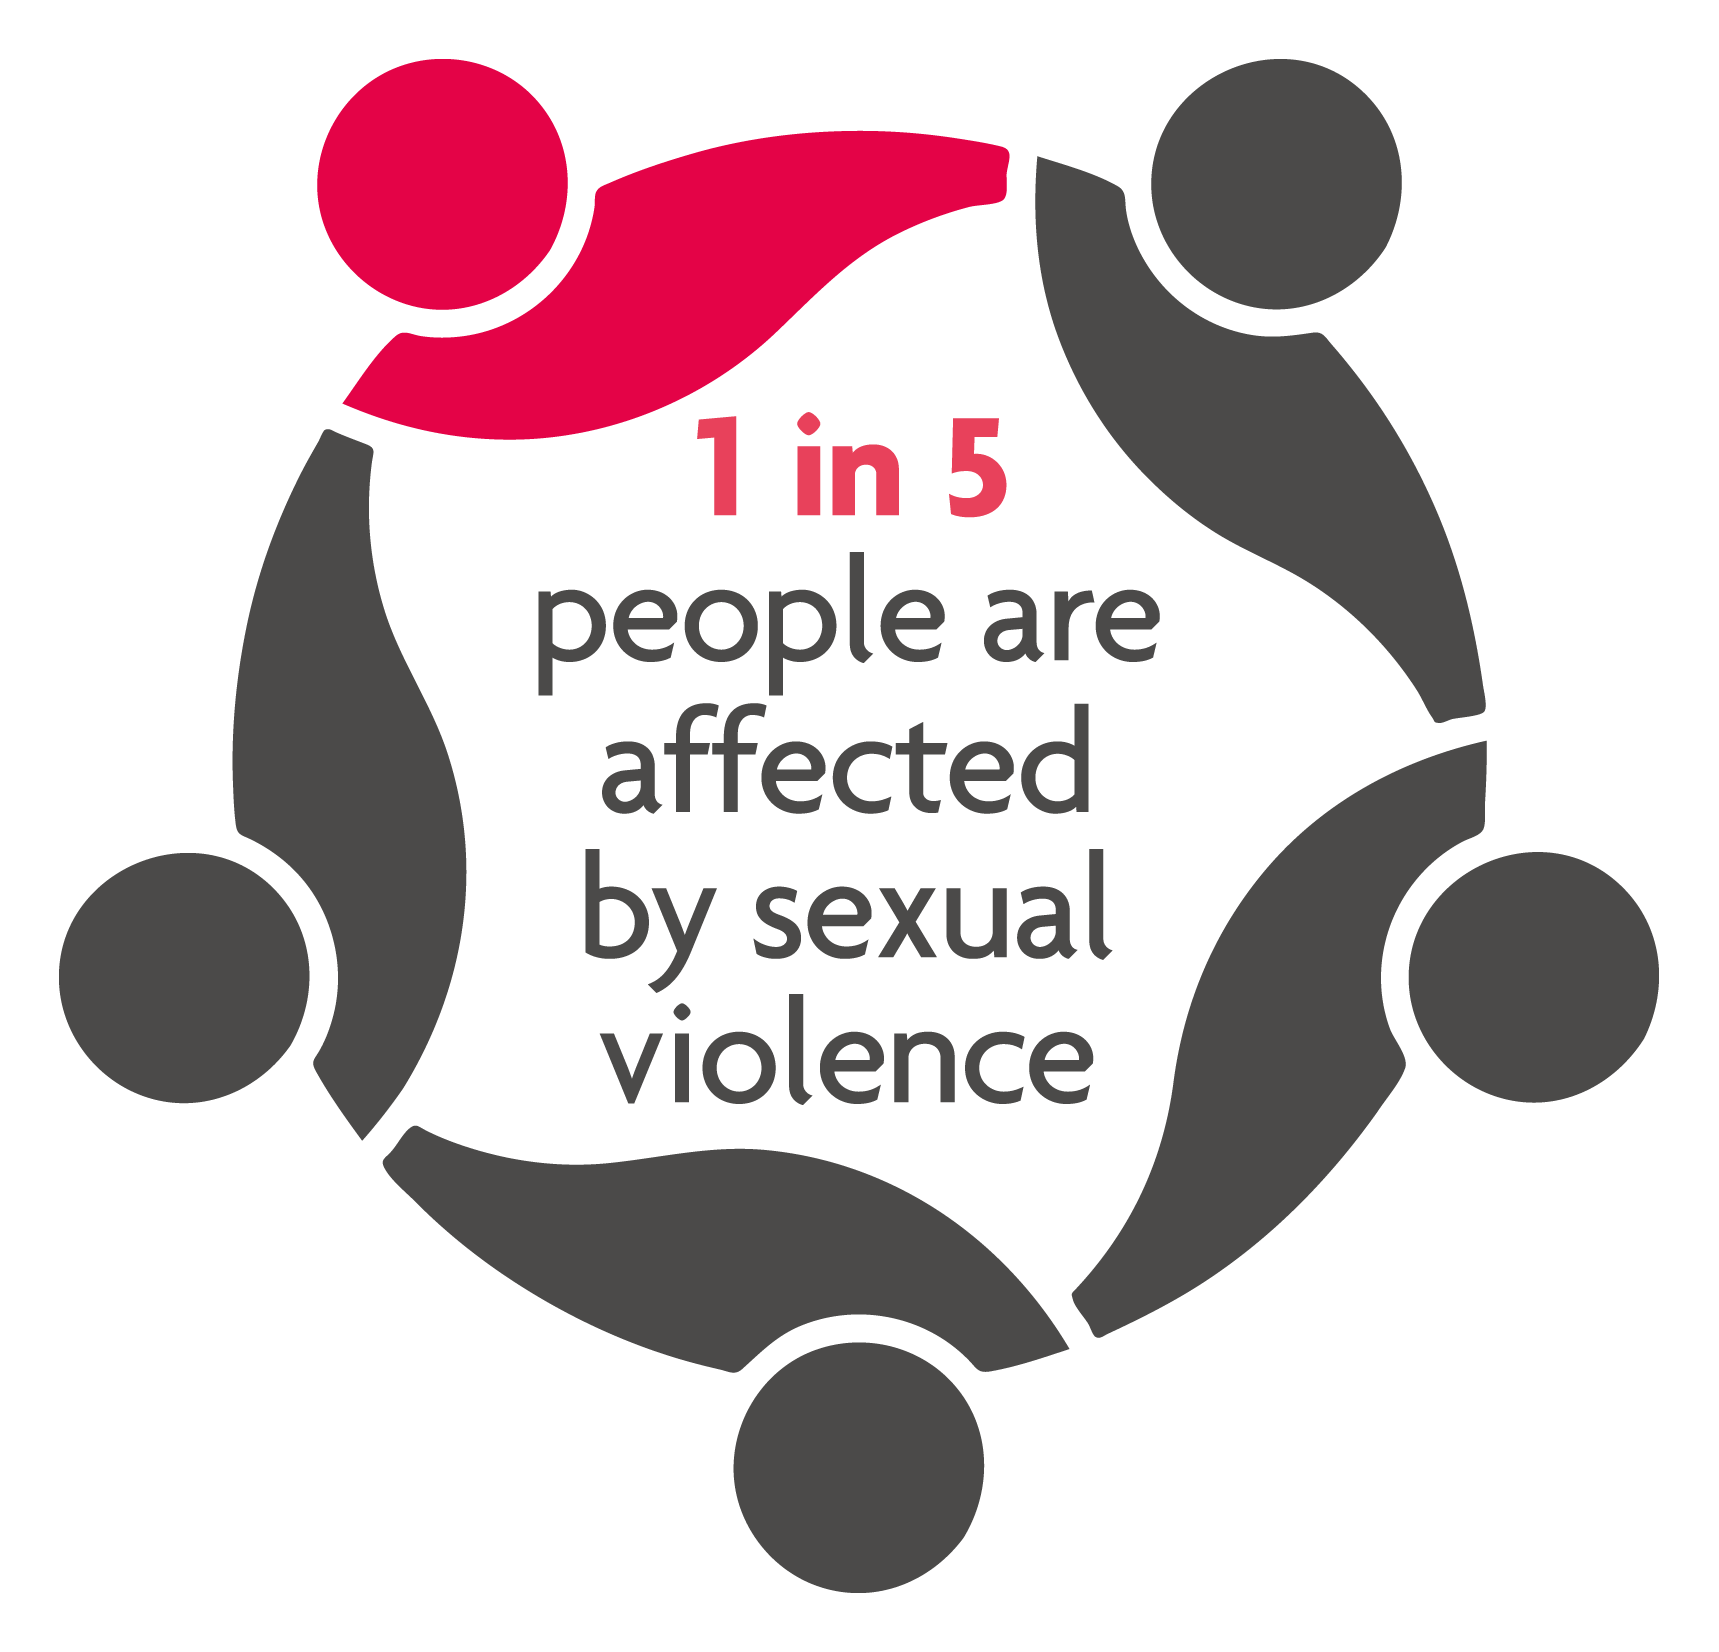 Family Matters Care And Support For Those Afraid To Talk